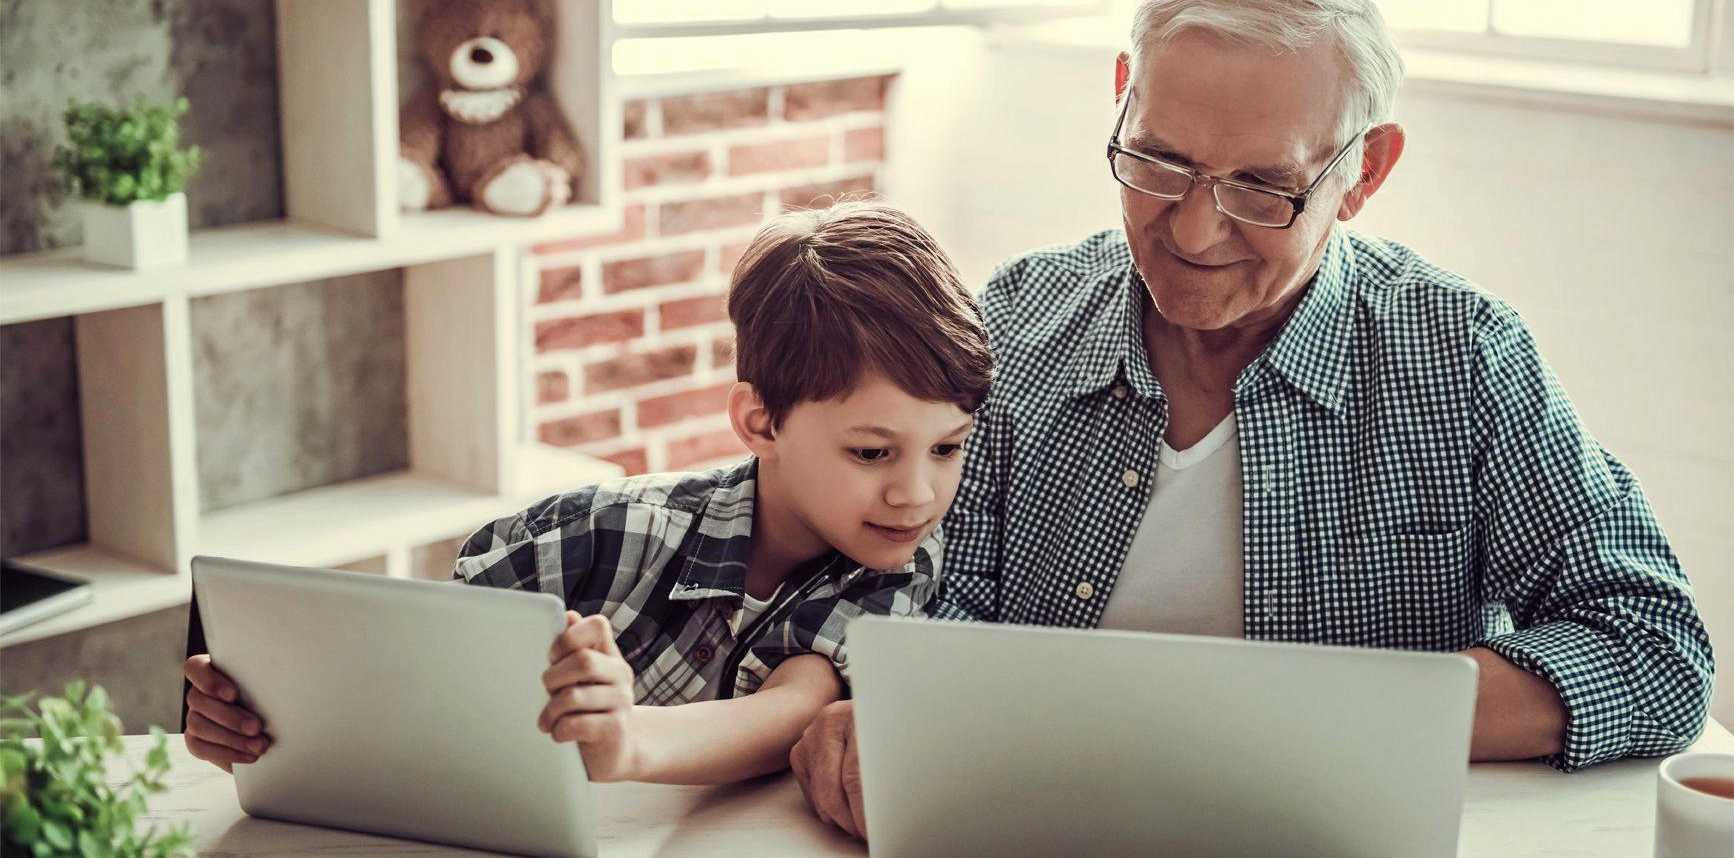 BEING CONNECTED: The Be Connected program helps Seniors keep in touch safely with family, friends and community in an increasingly digital age.